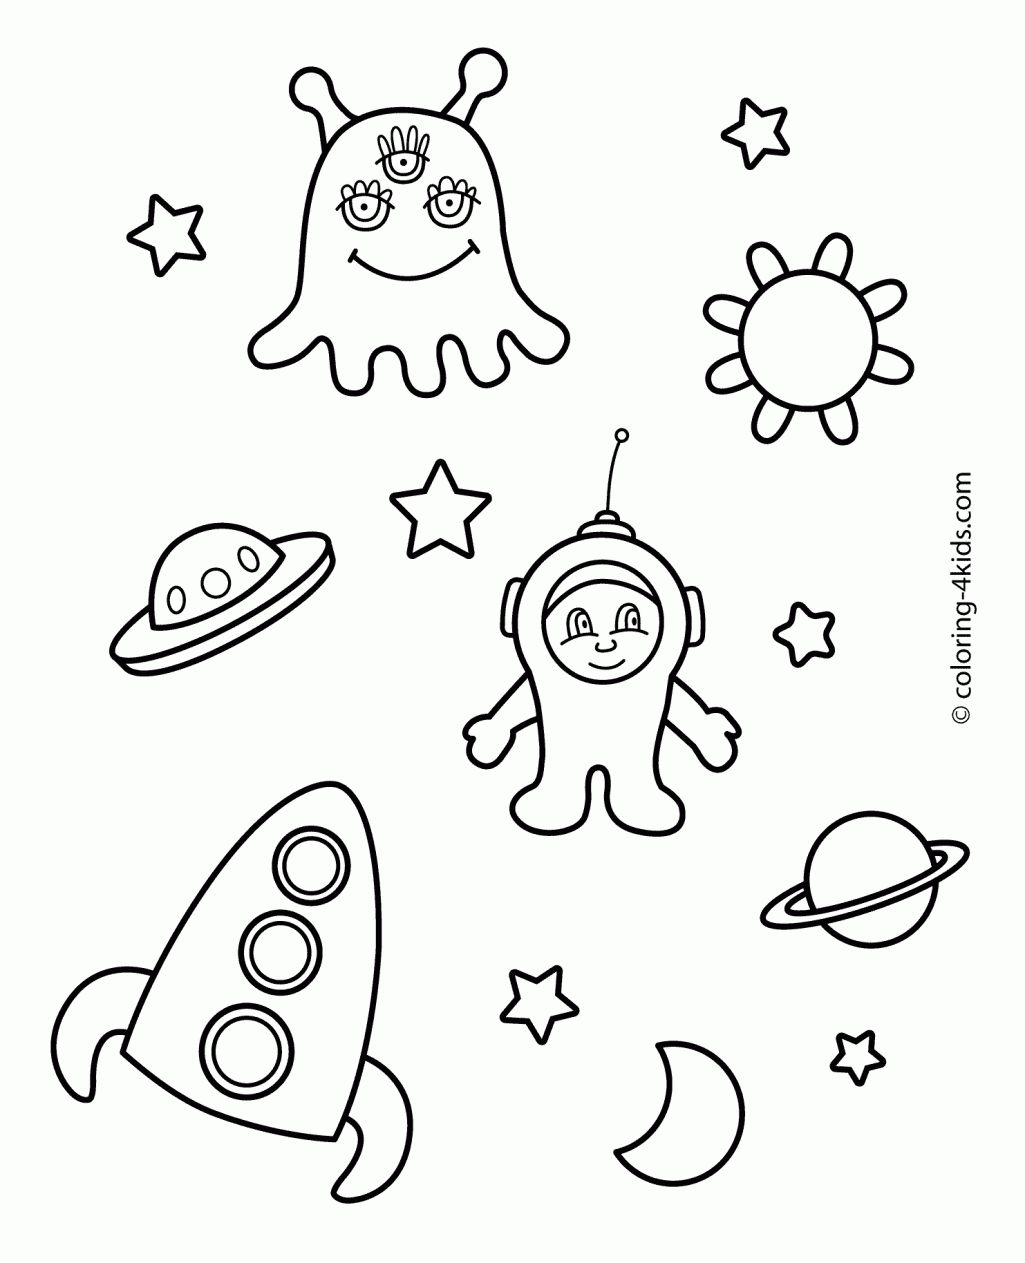 Space And Ufo Coloring Pages For Kids Printable Free